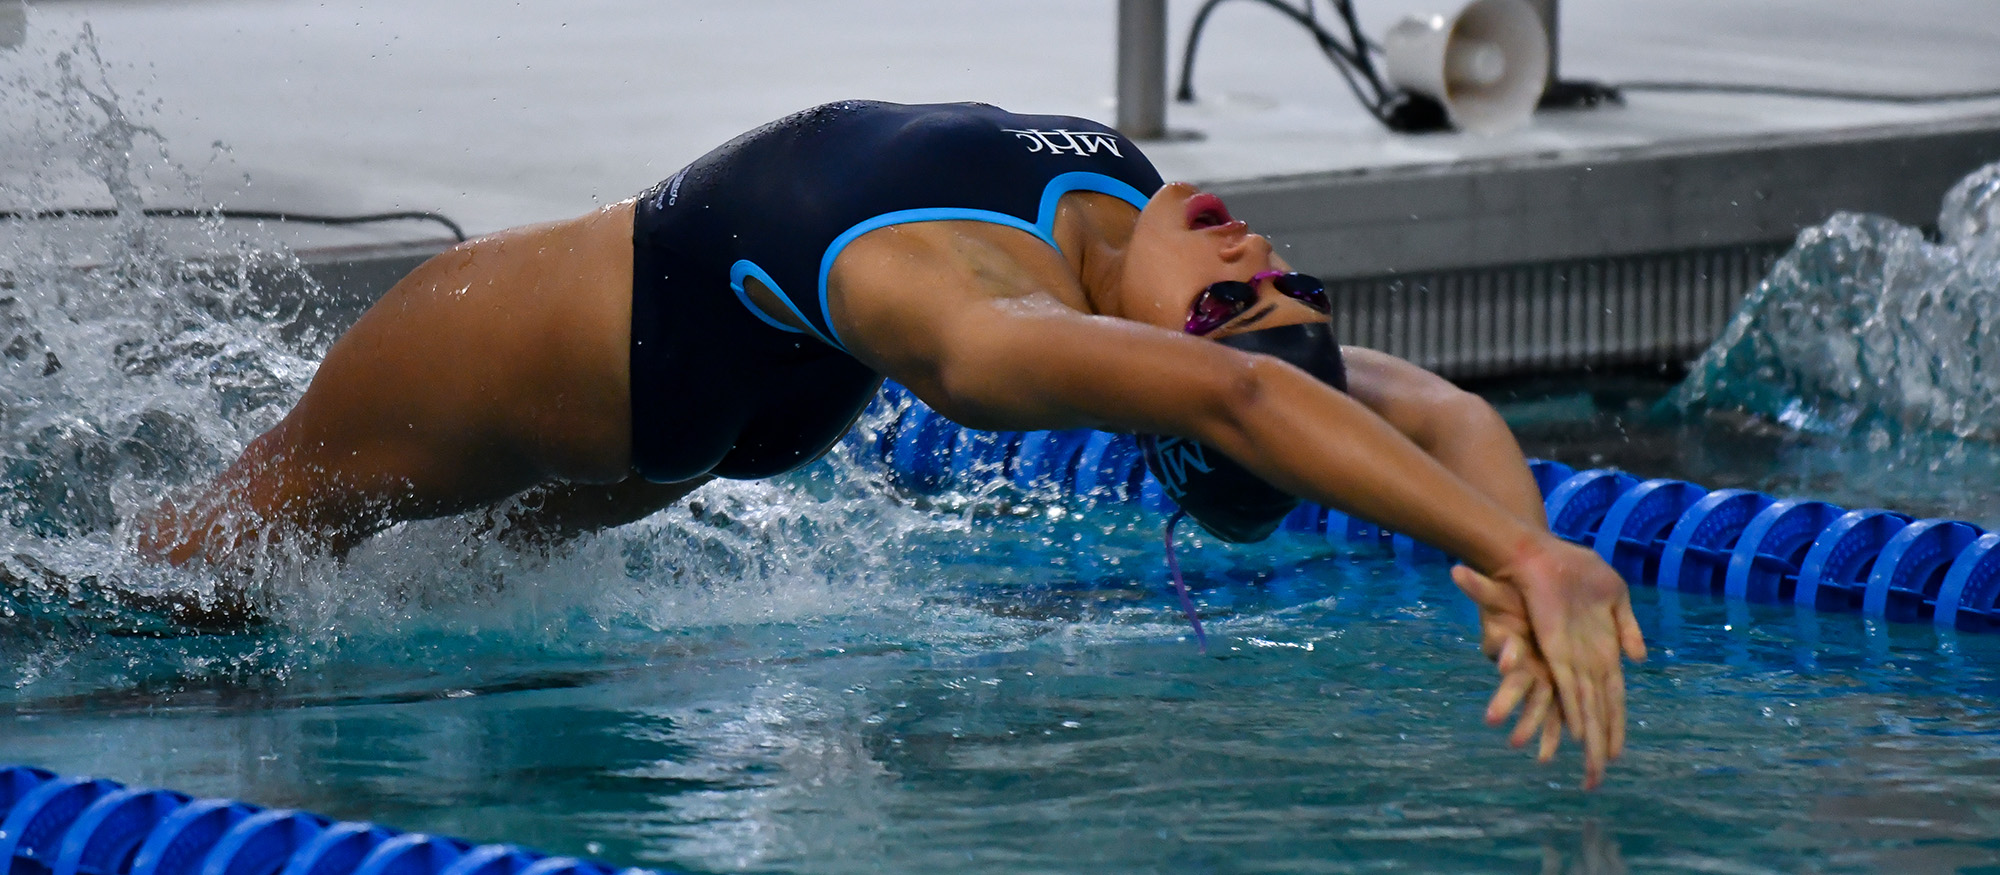 image of an MHC swimmer at the start of the backstroke